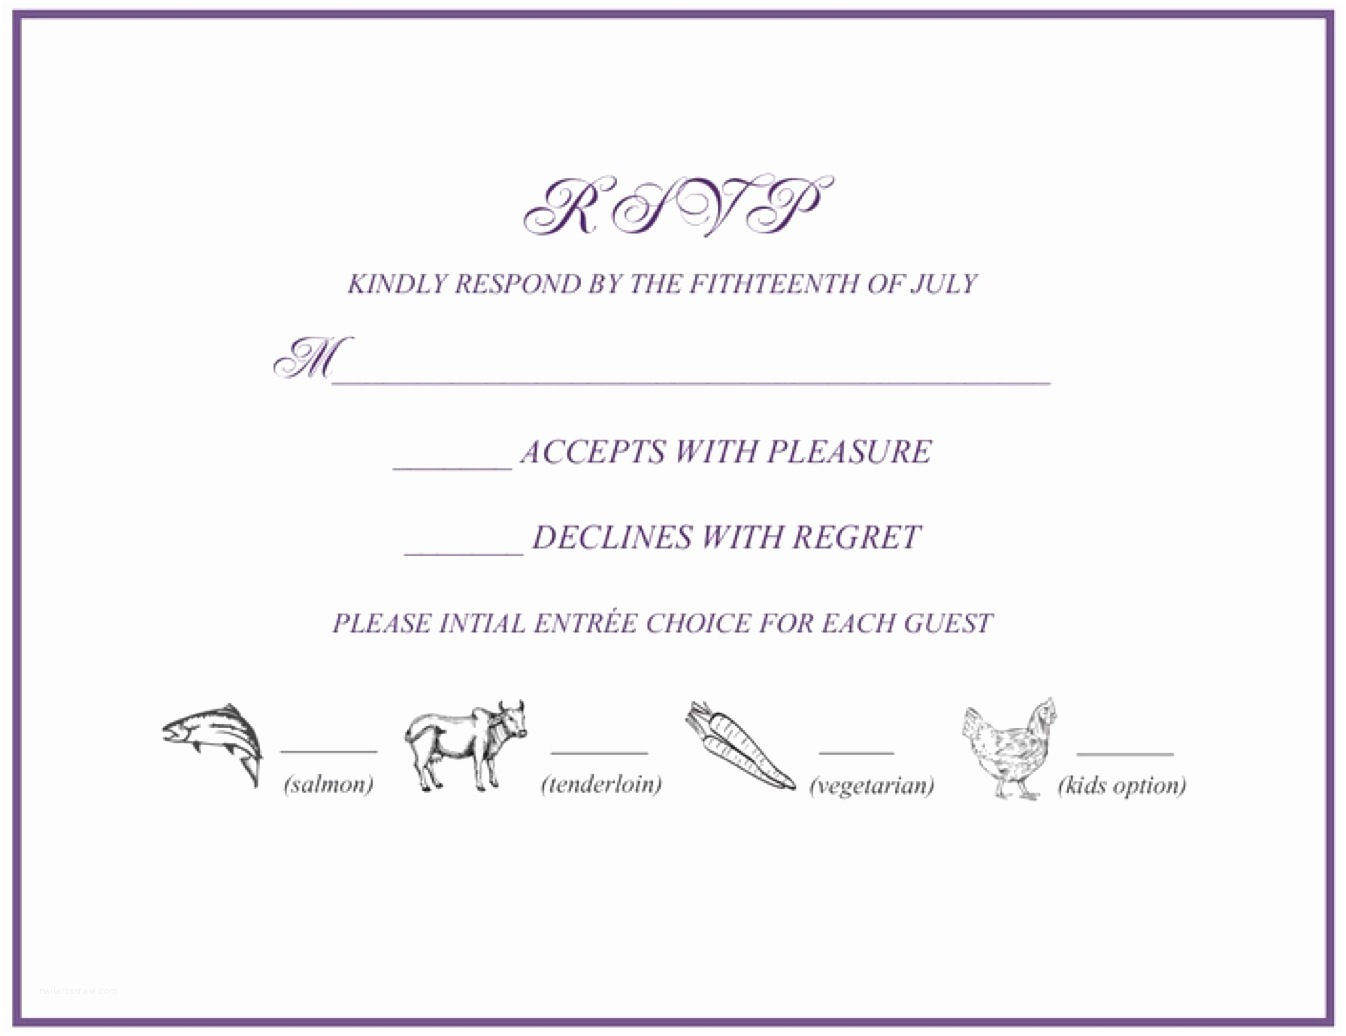 Wedding Invitations and Response Cards All In One Rsvp 101 How to Rsvp to A Wedding or event Rsvpify